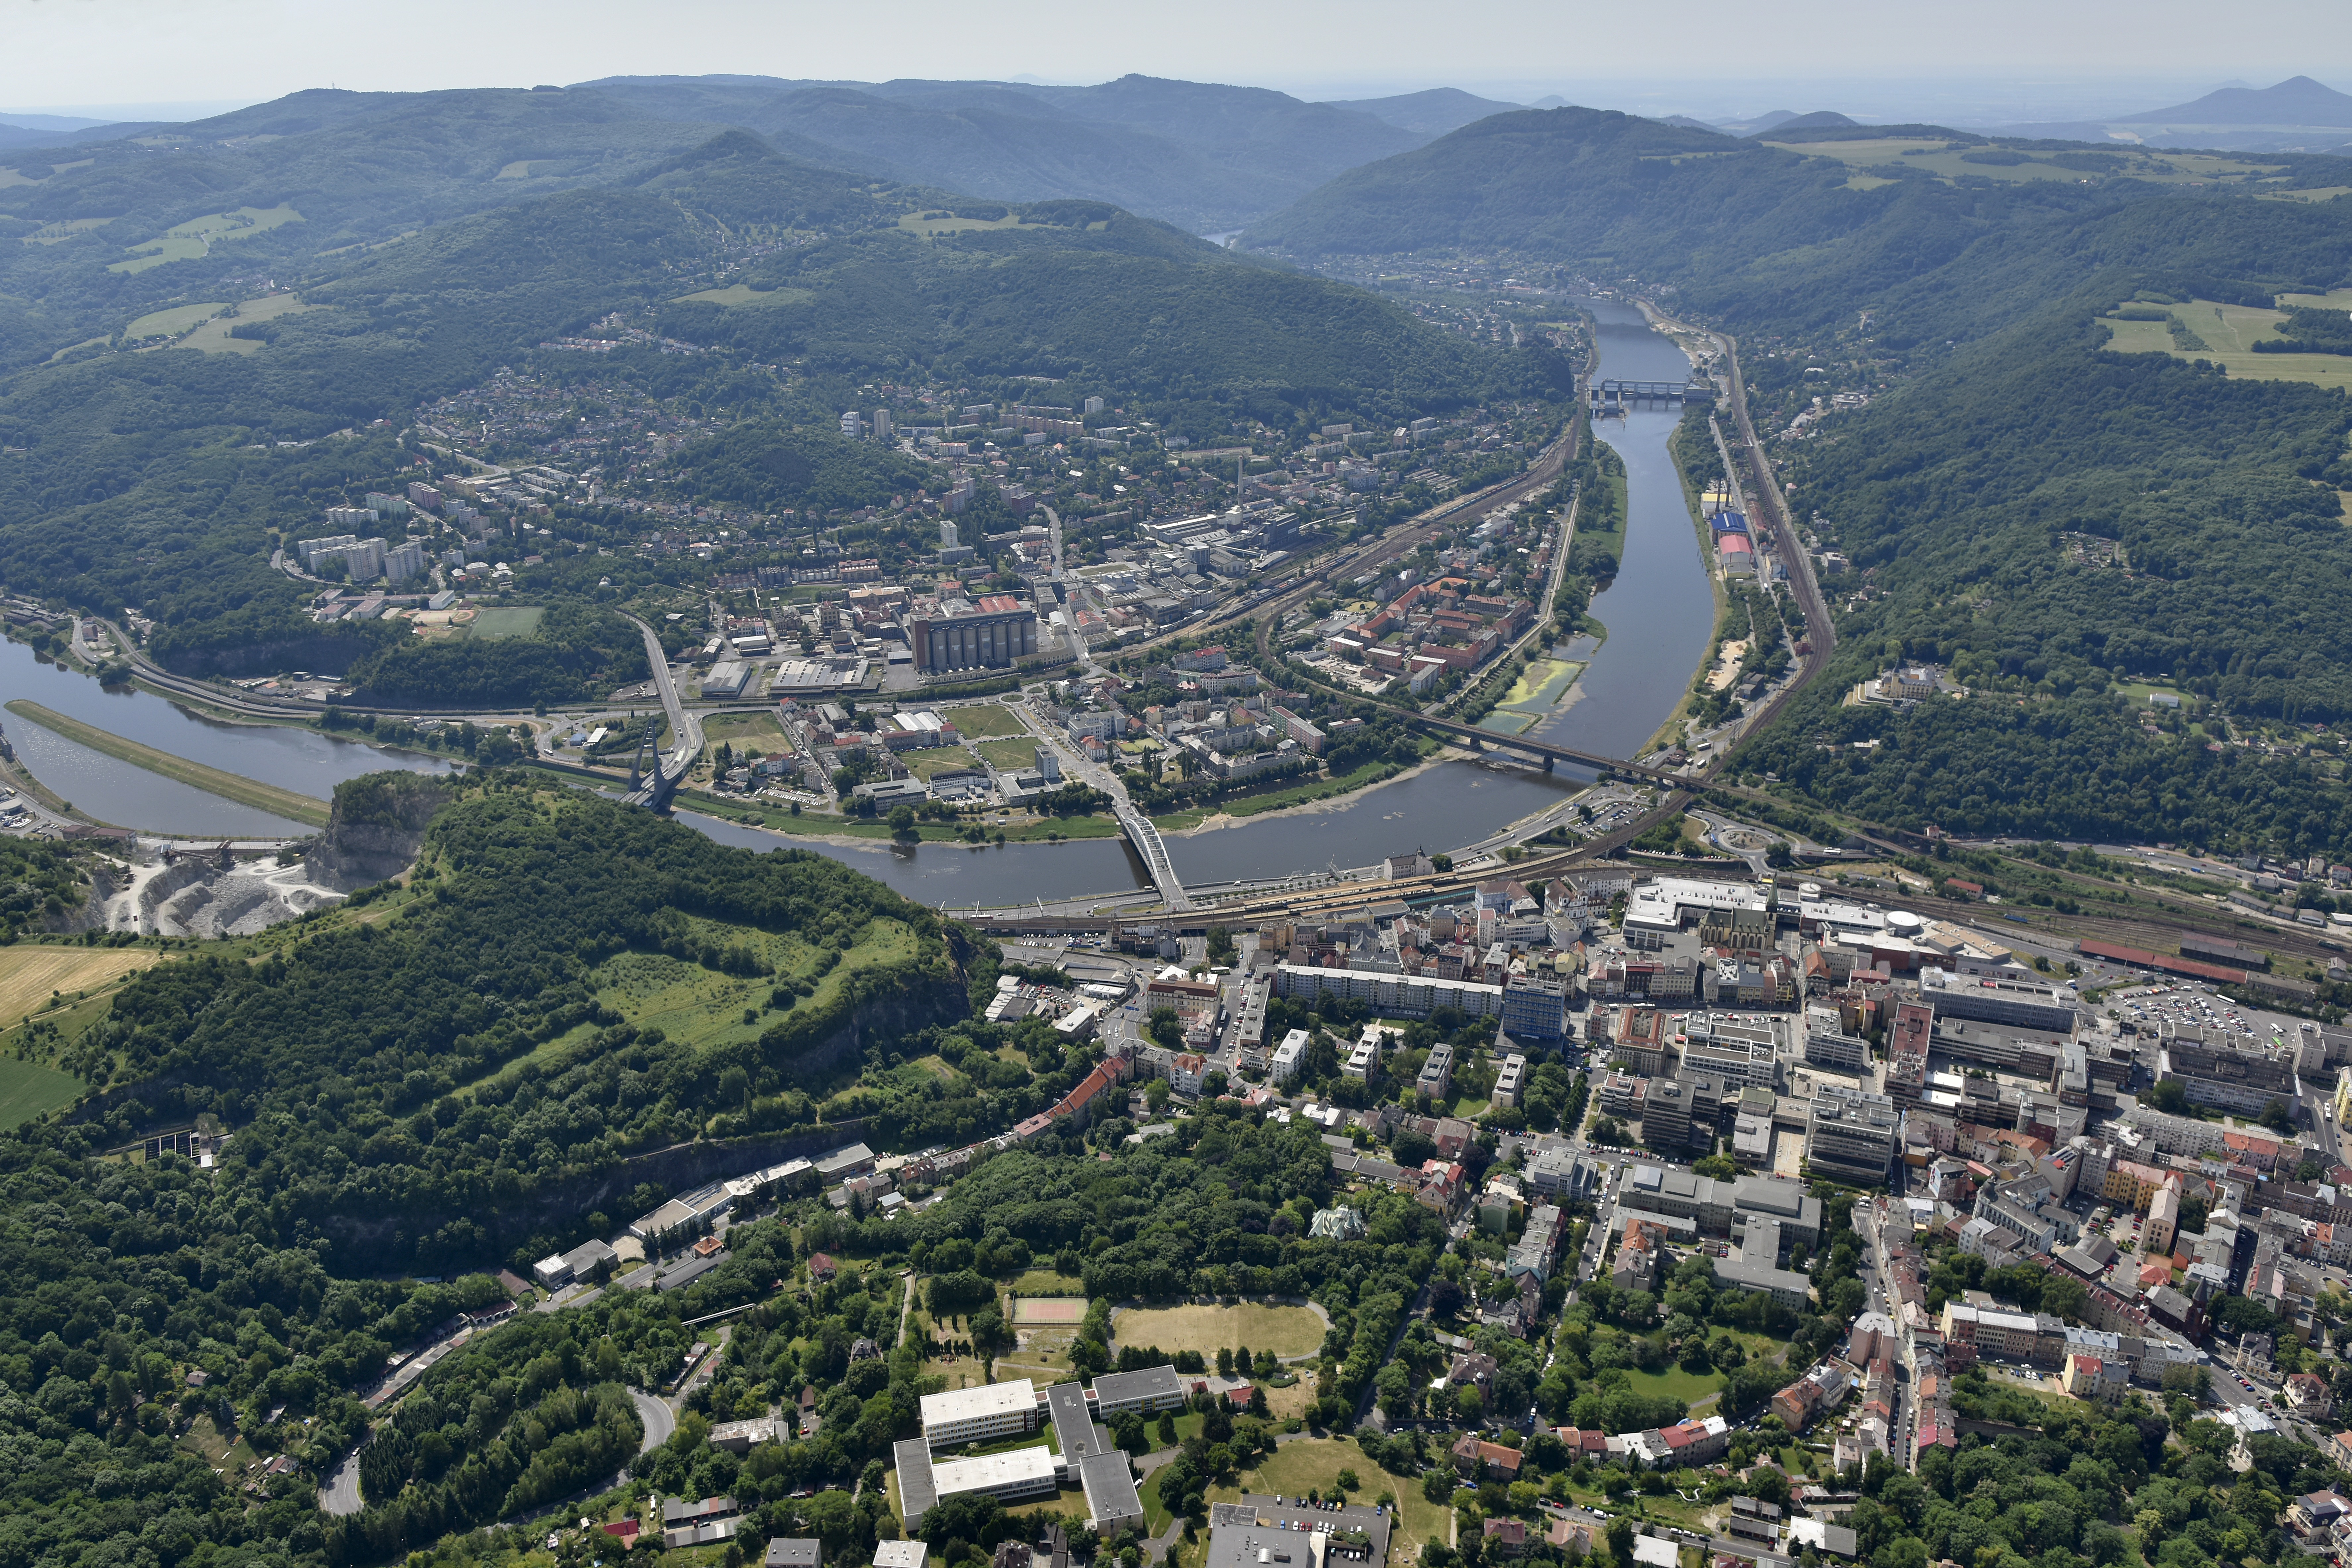 usti nad labem guys View the profiles of people named caroline guys join facebook to connect with caroline guys and others you may know Ústí nad labem.